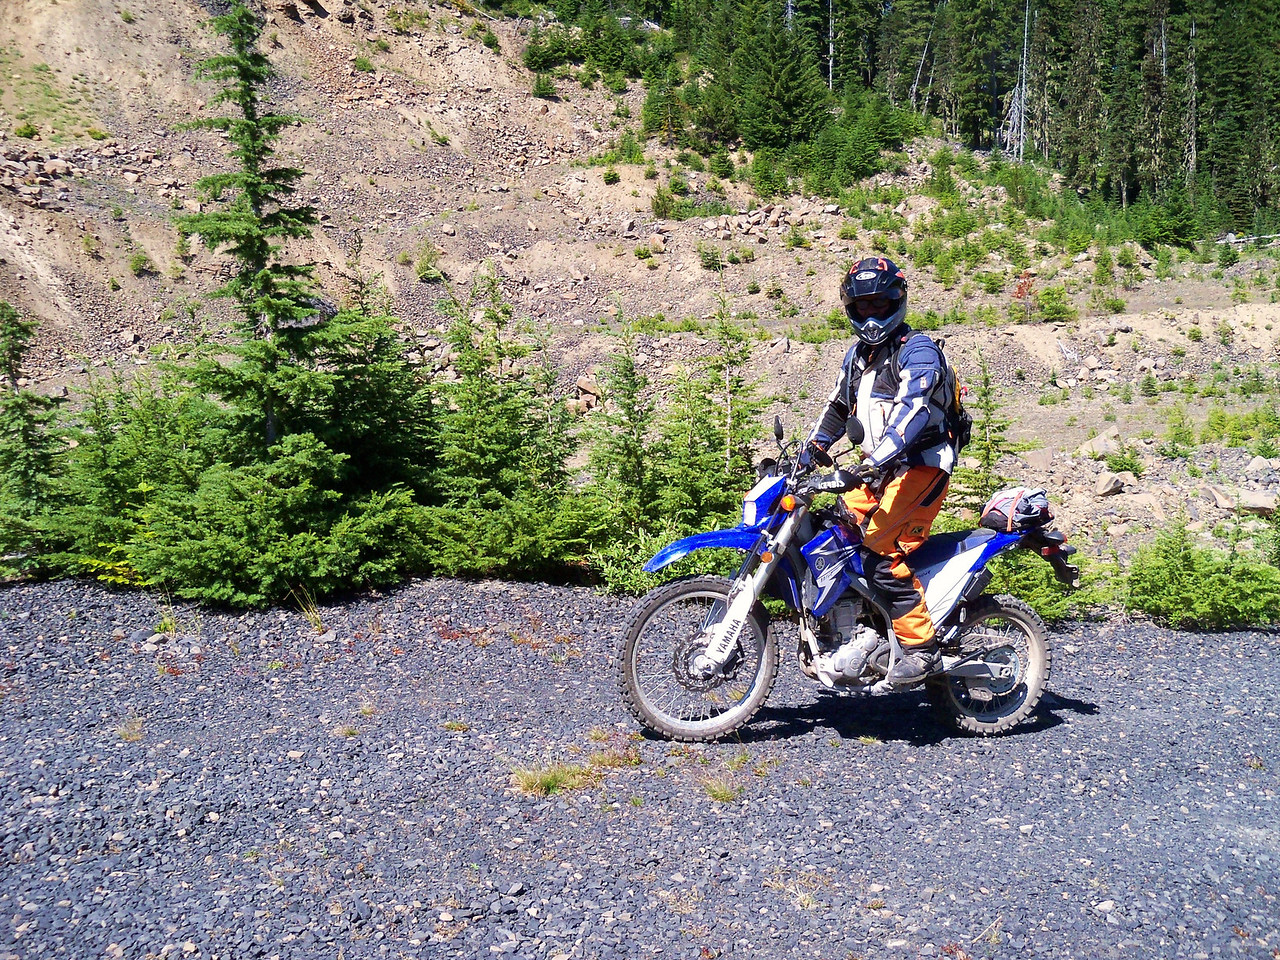 Todd on his WR 250 R